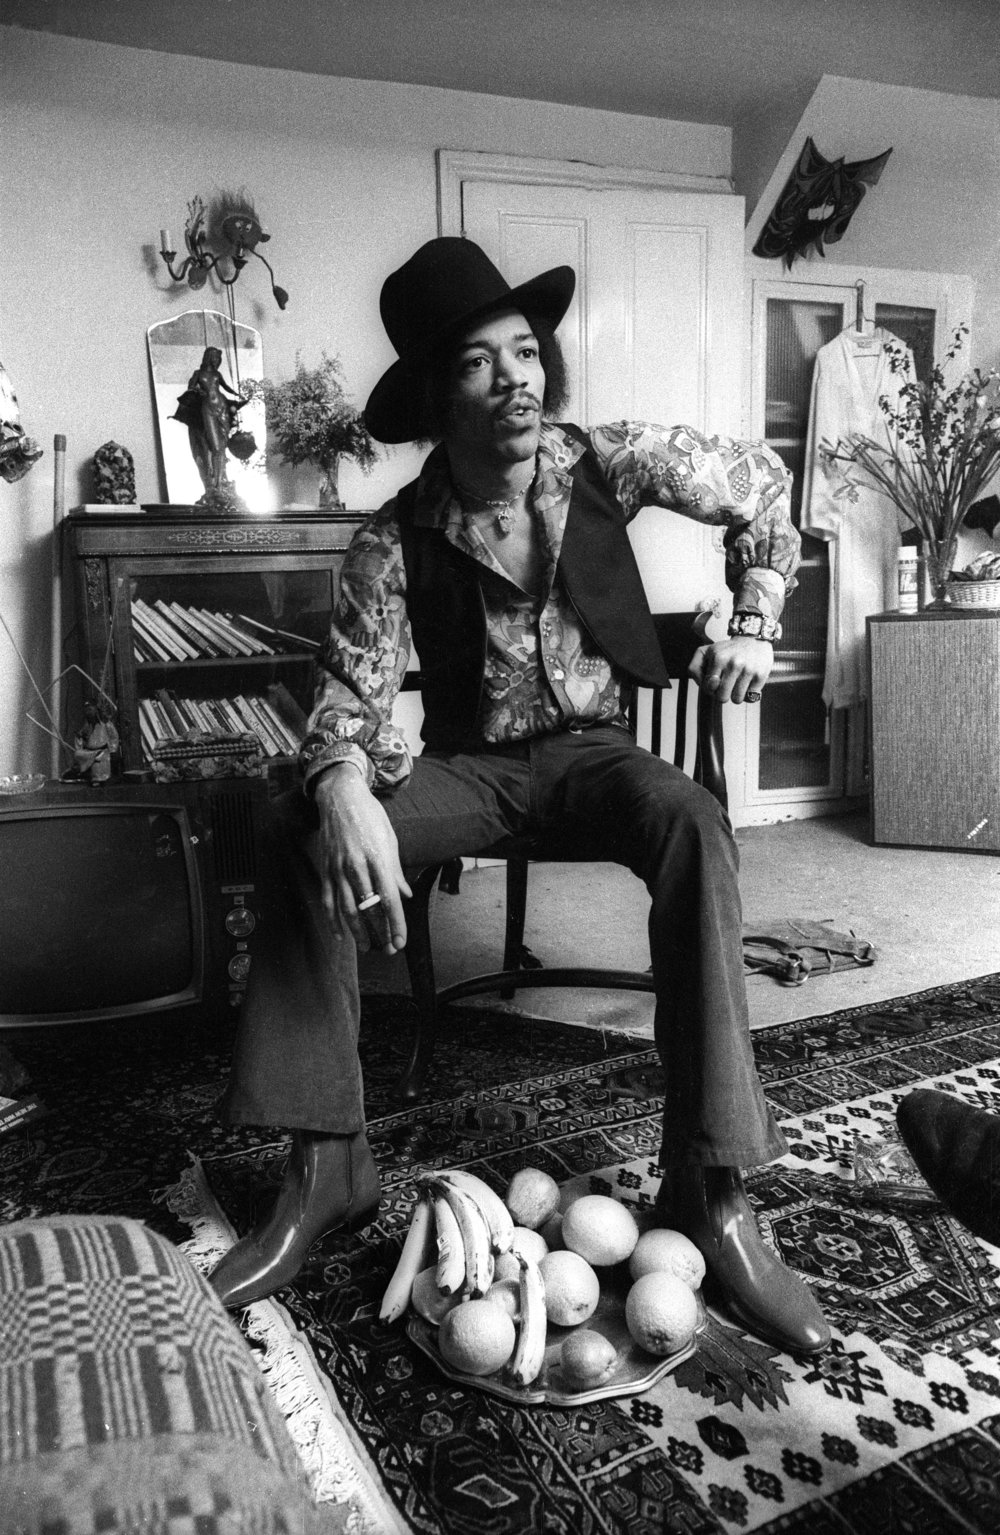 Jimi Hendrix at 23 Brook Street, 1969. Credit (c) Barrie Wentzell